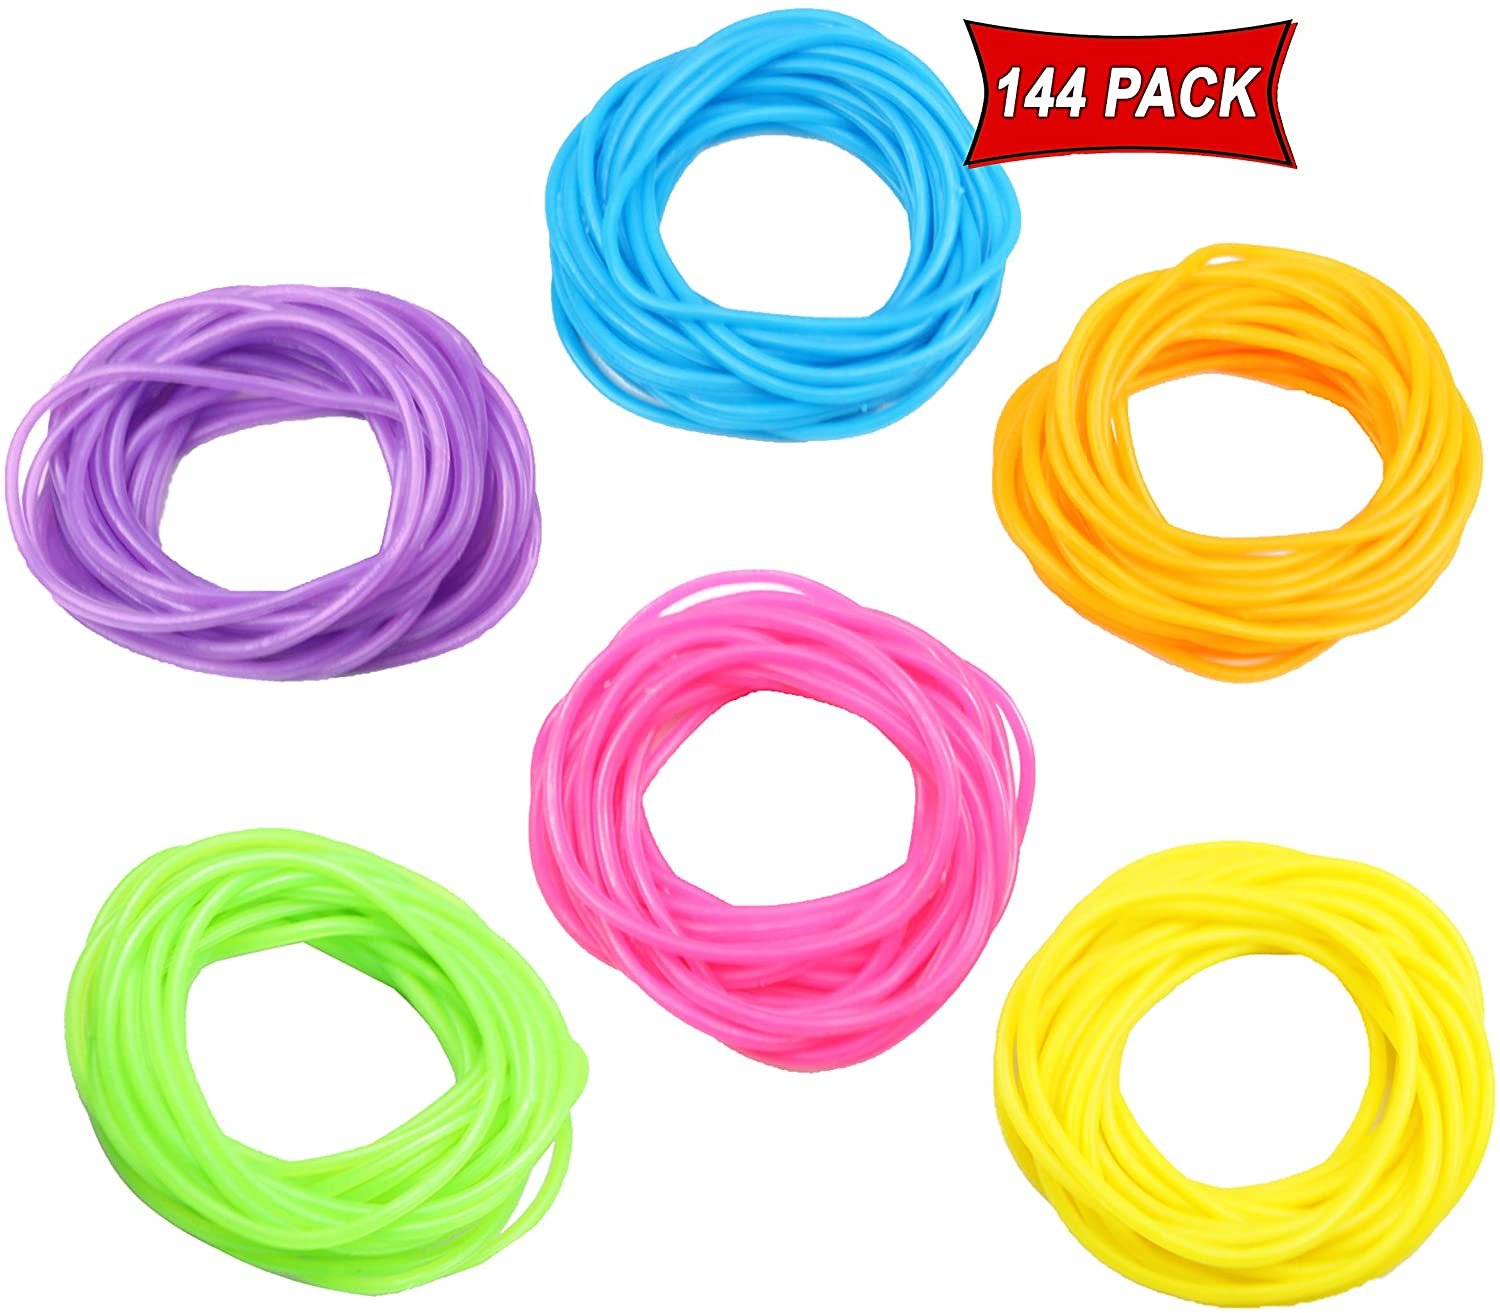 Neon Jelly Bracelets 80's Retro Style Stretchable Bracelets In Rainbow Colors For Prizes, Party Favors, Gifts, Themed Events - Assorted Bulk Pack Of 144 Bracelets